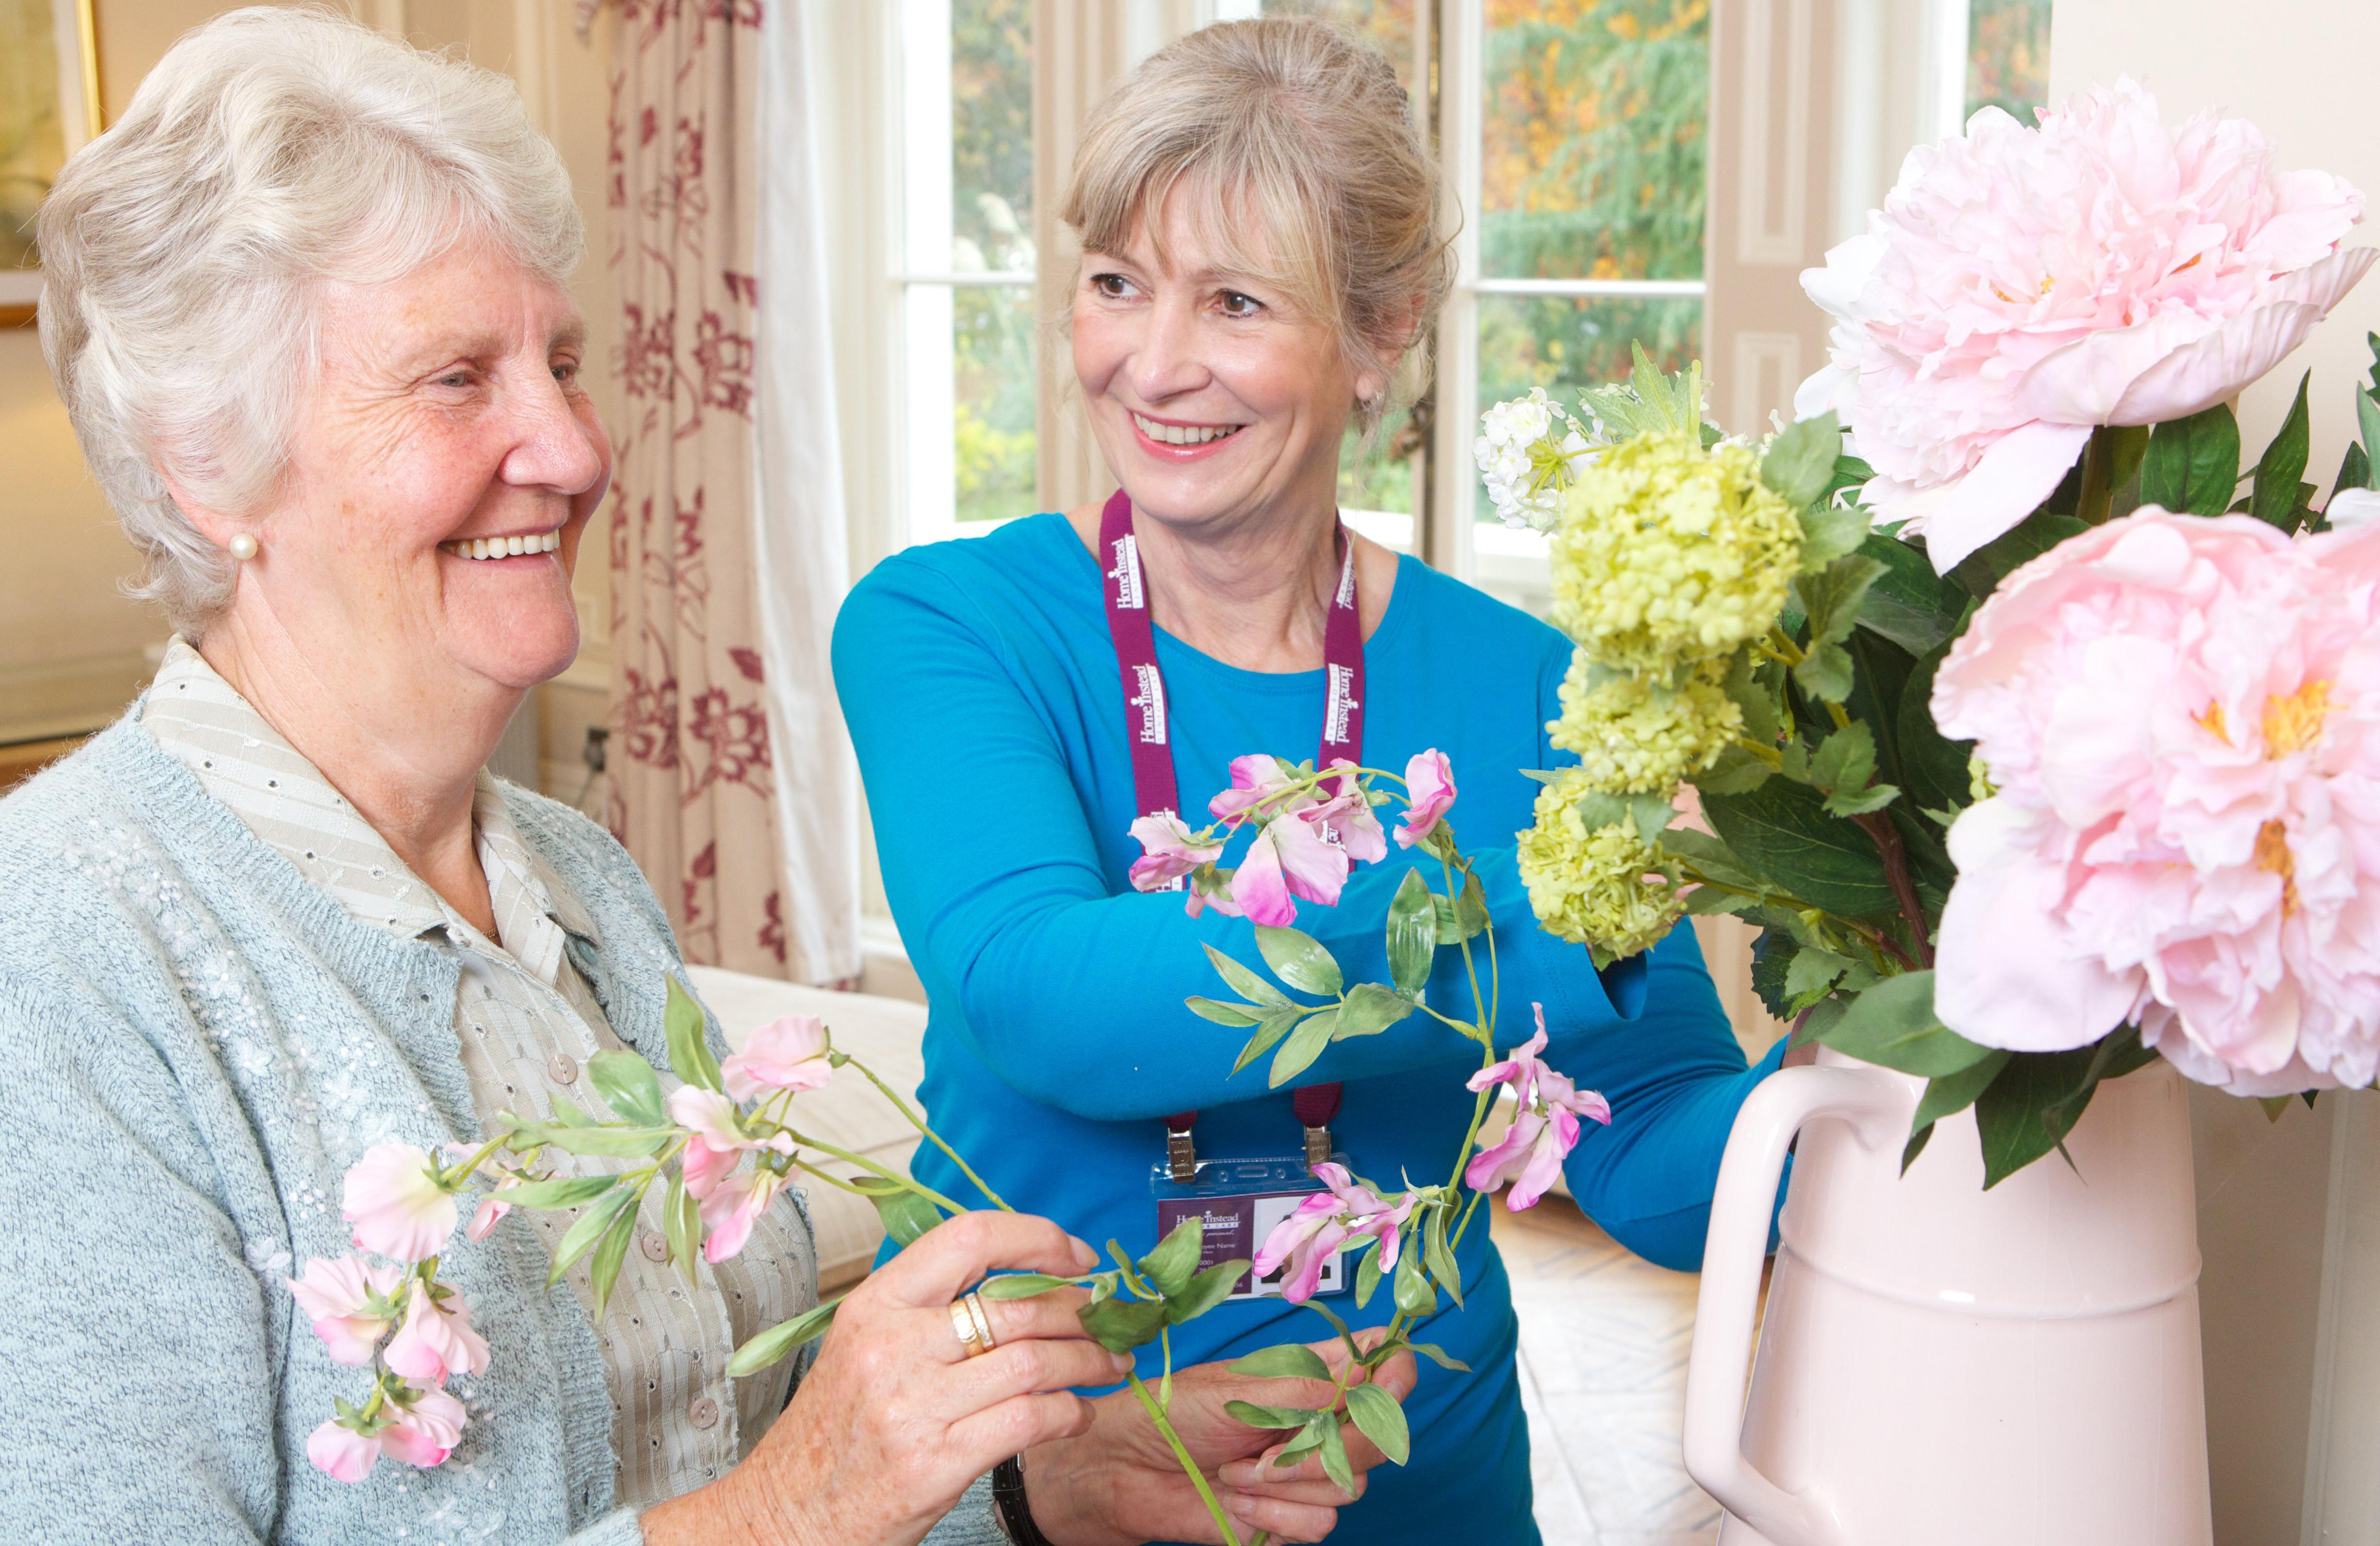 Caregiver helping elderly lady with flowers